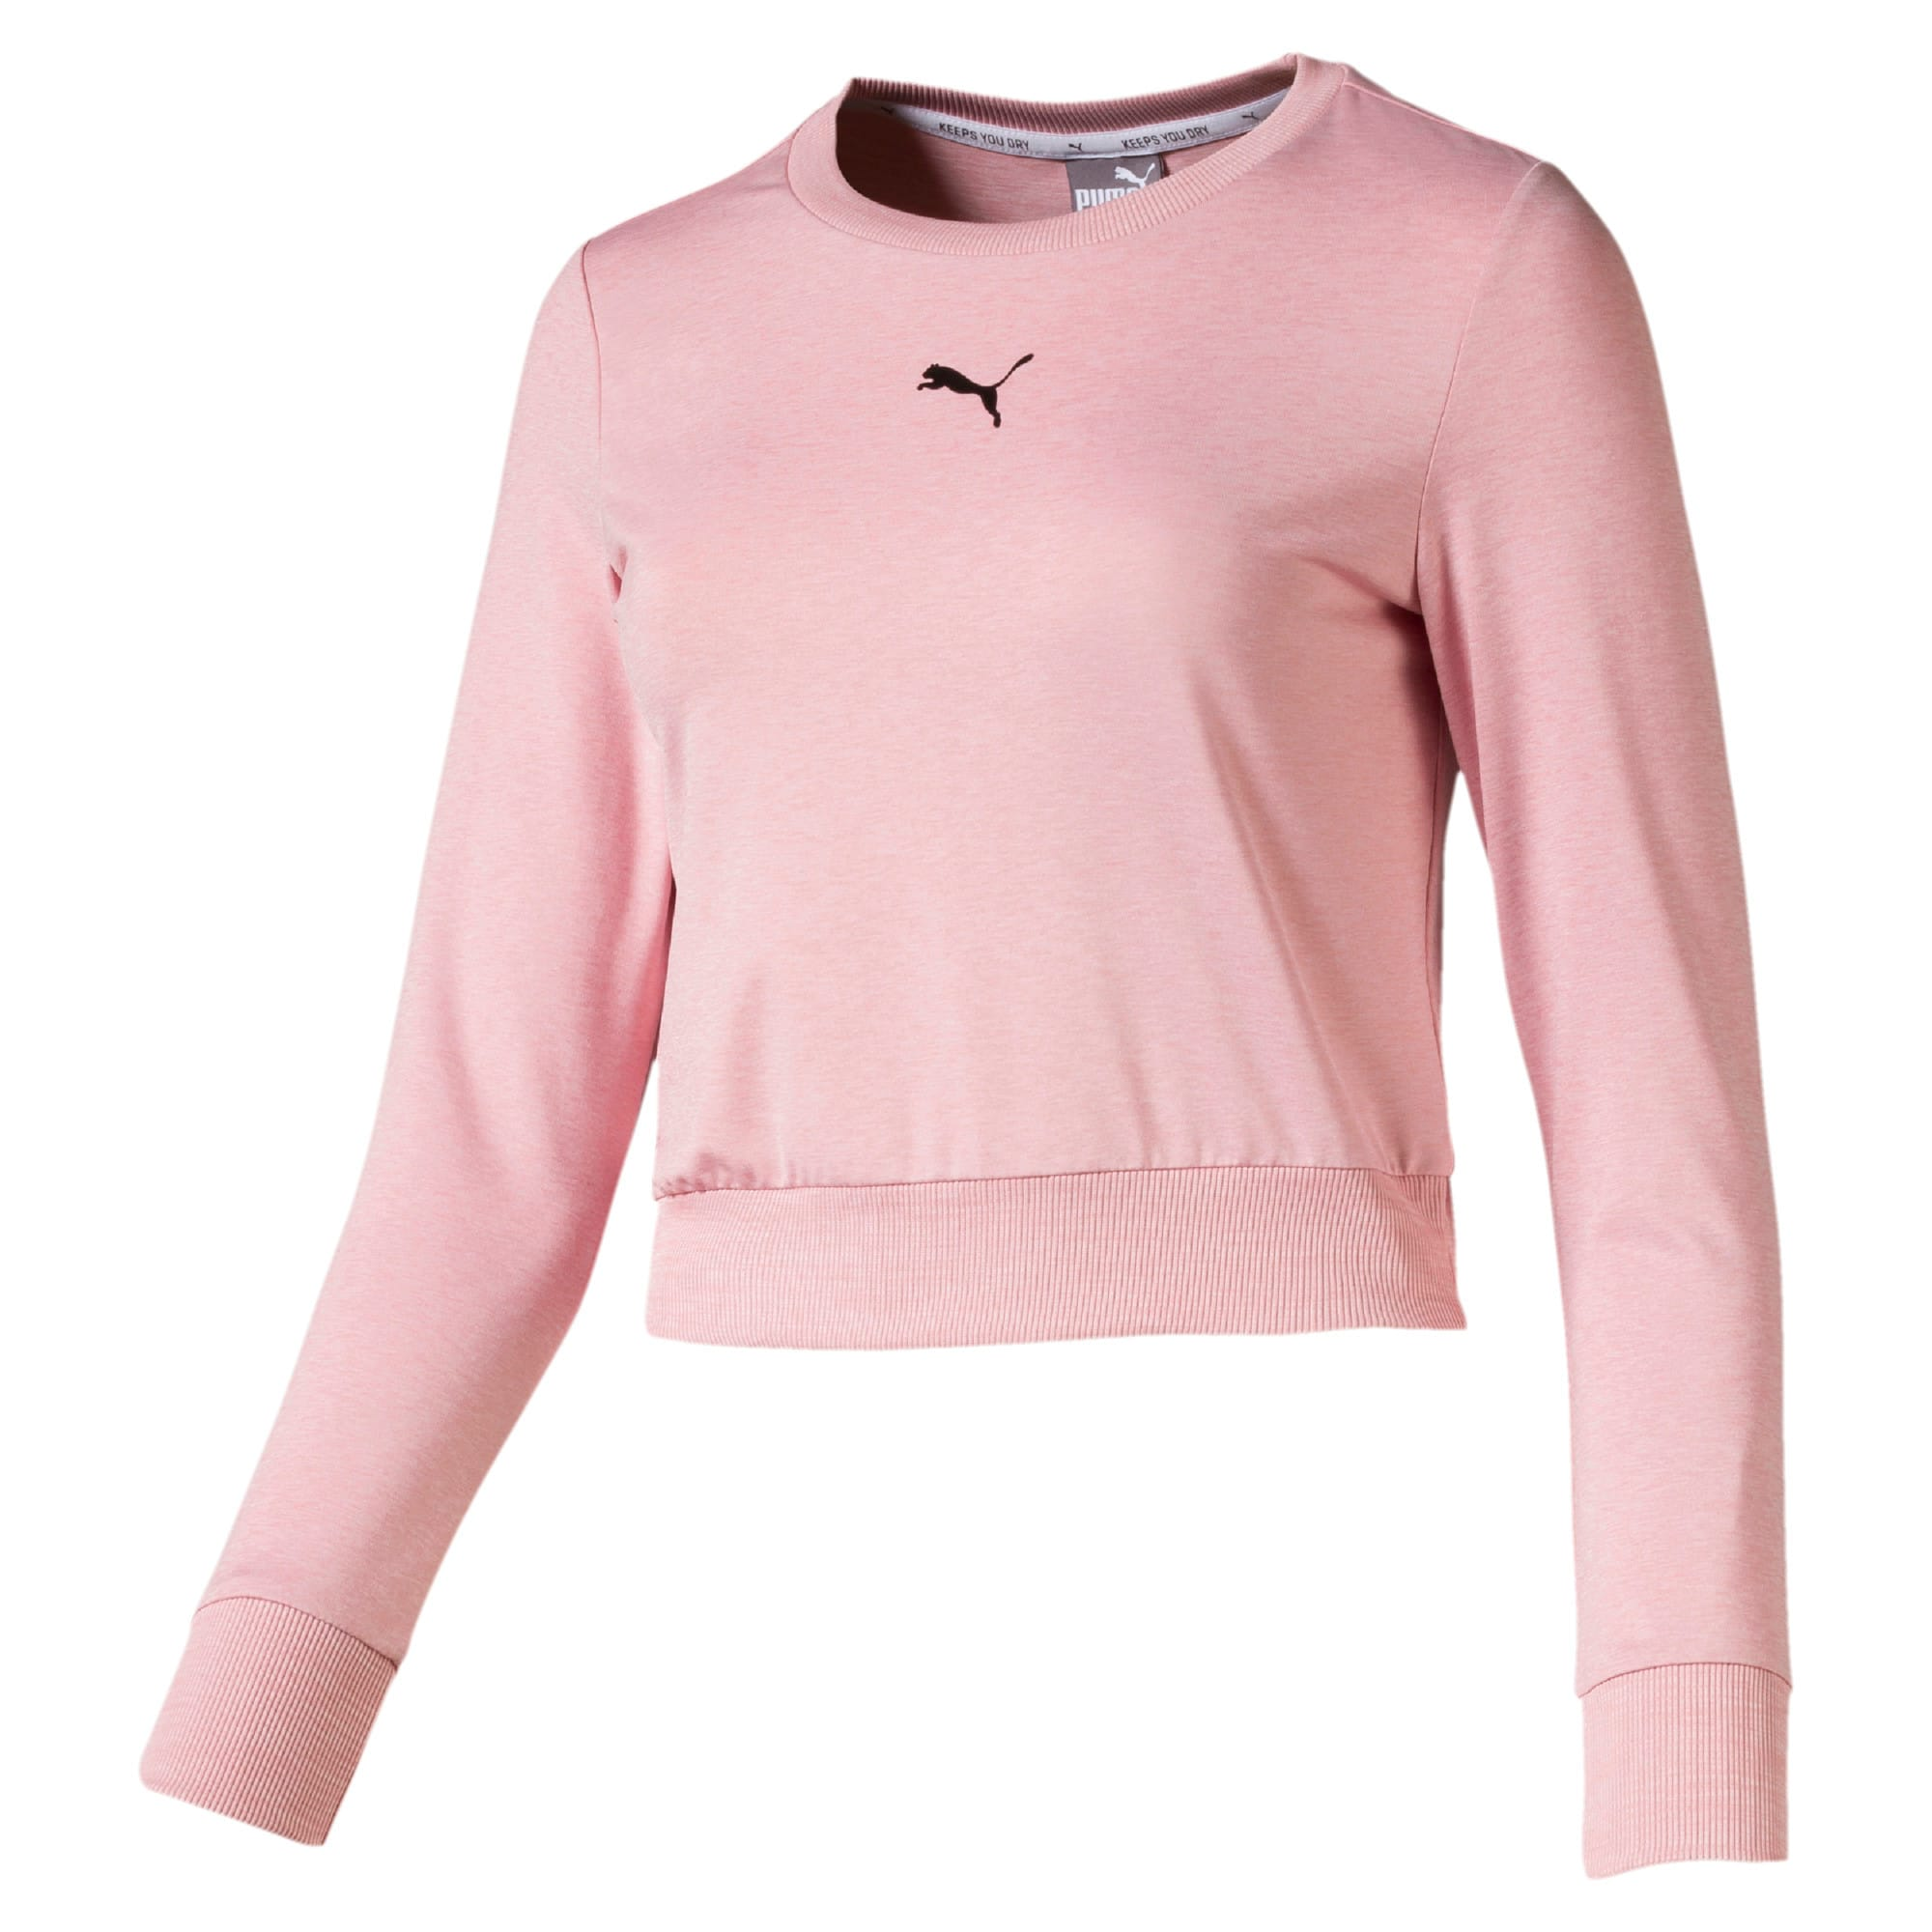 Thumbnail 4 of Soft Sports Long Sleeve Women's Tee, Bridal Rose Heather, medium-IND